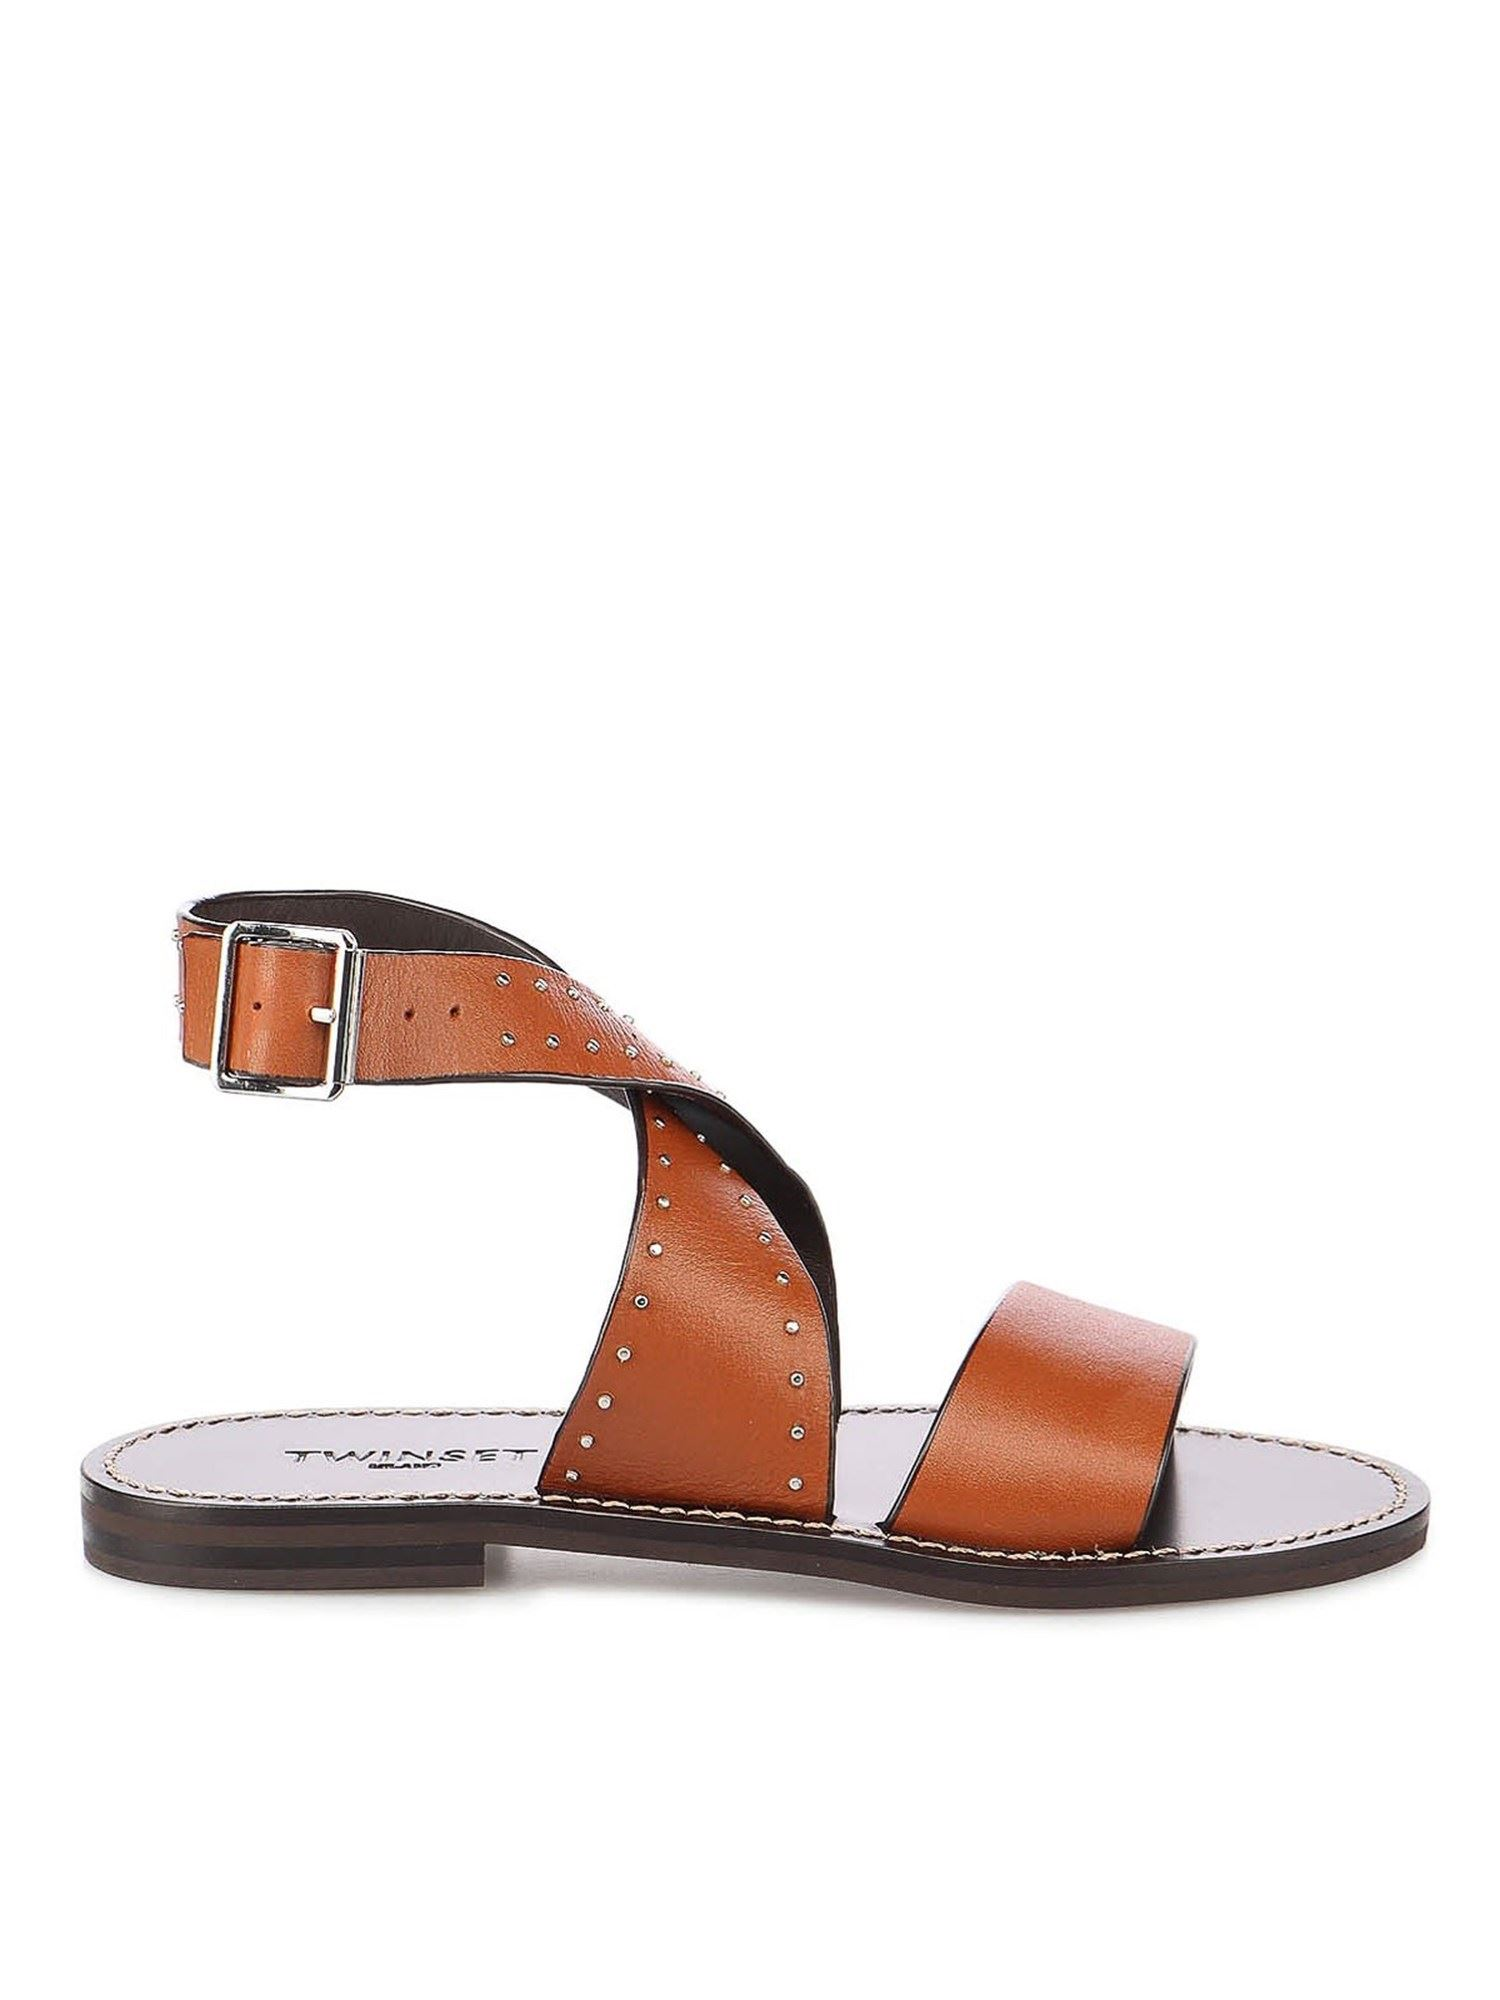 Twinset STUDDED LEATHER SANDALS IN CUOIO COLOR